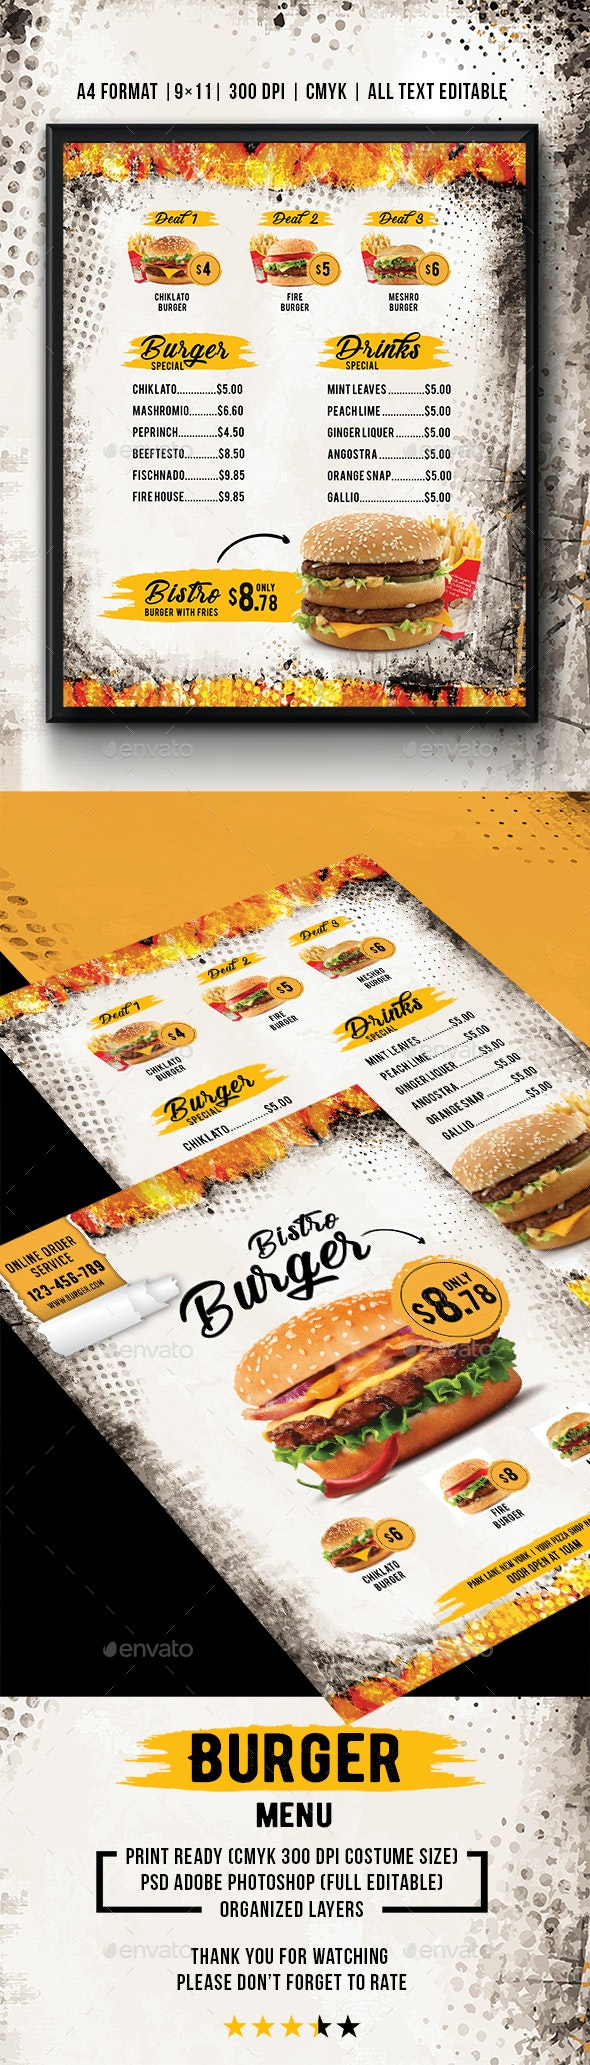 Food Menu Burger